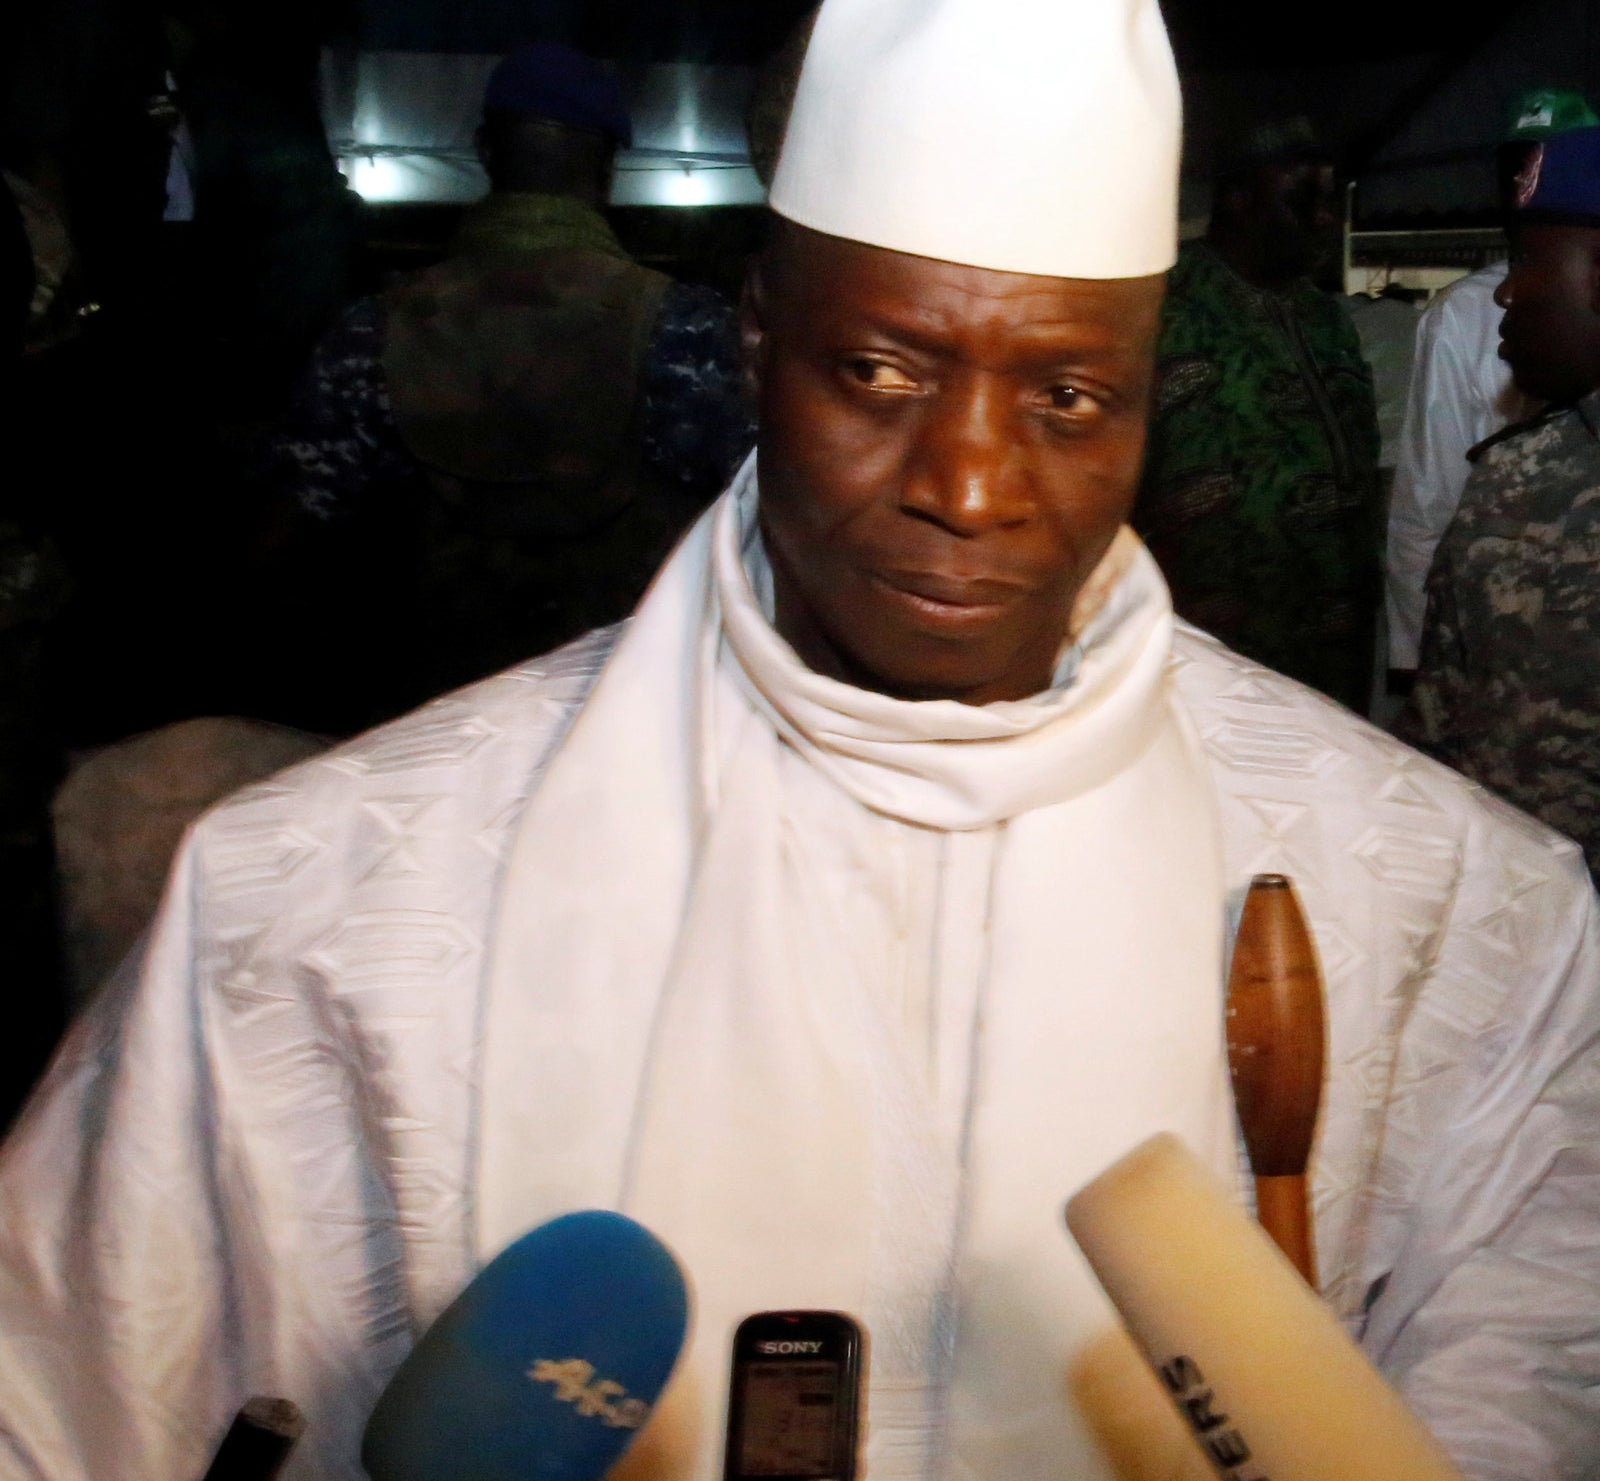 Gambia's President Is Paying Mercenaries To Help His Cause After Shocking Election Defeat